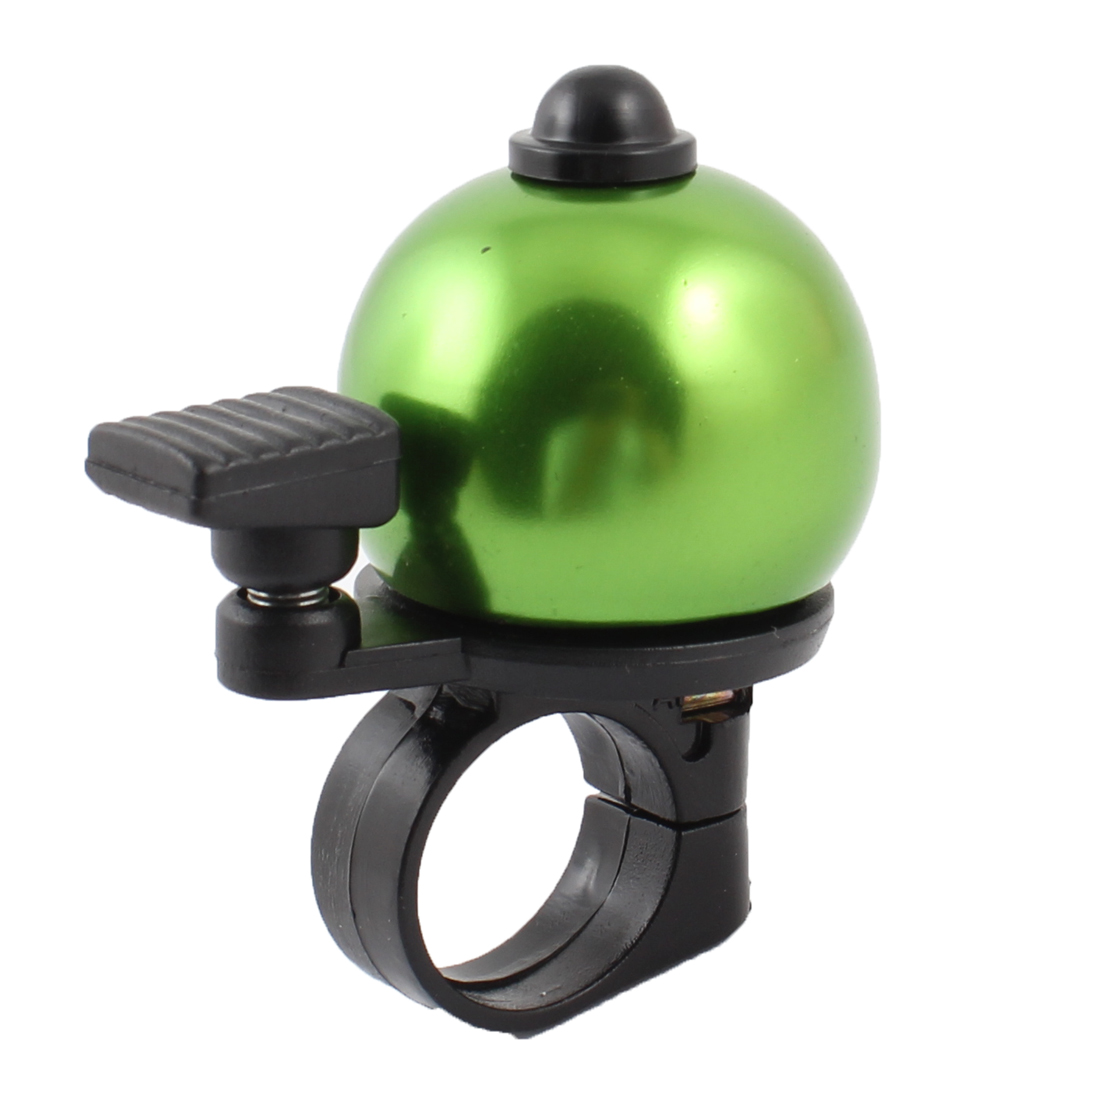 Green Bike Alarm Sound Warming Bell for 22mm Handlebar Bike